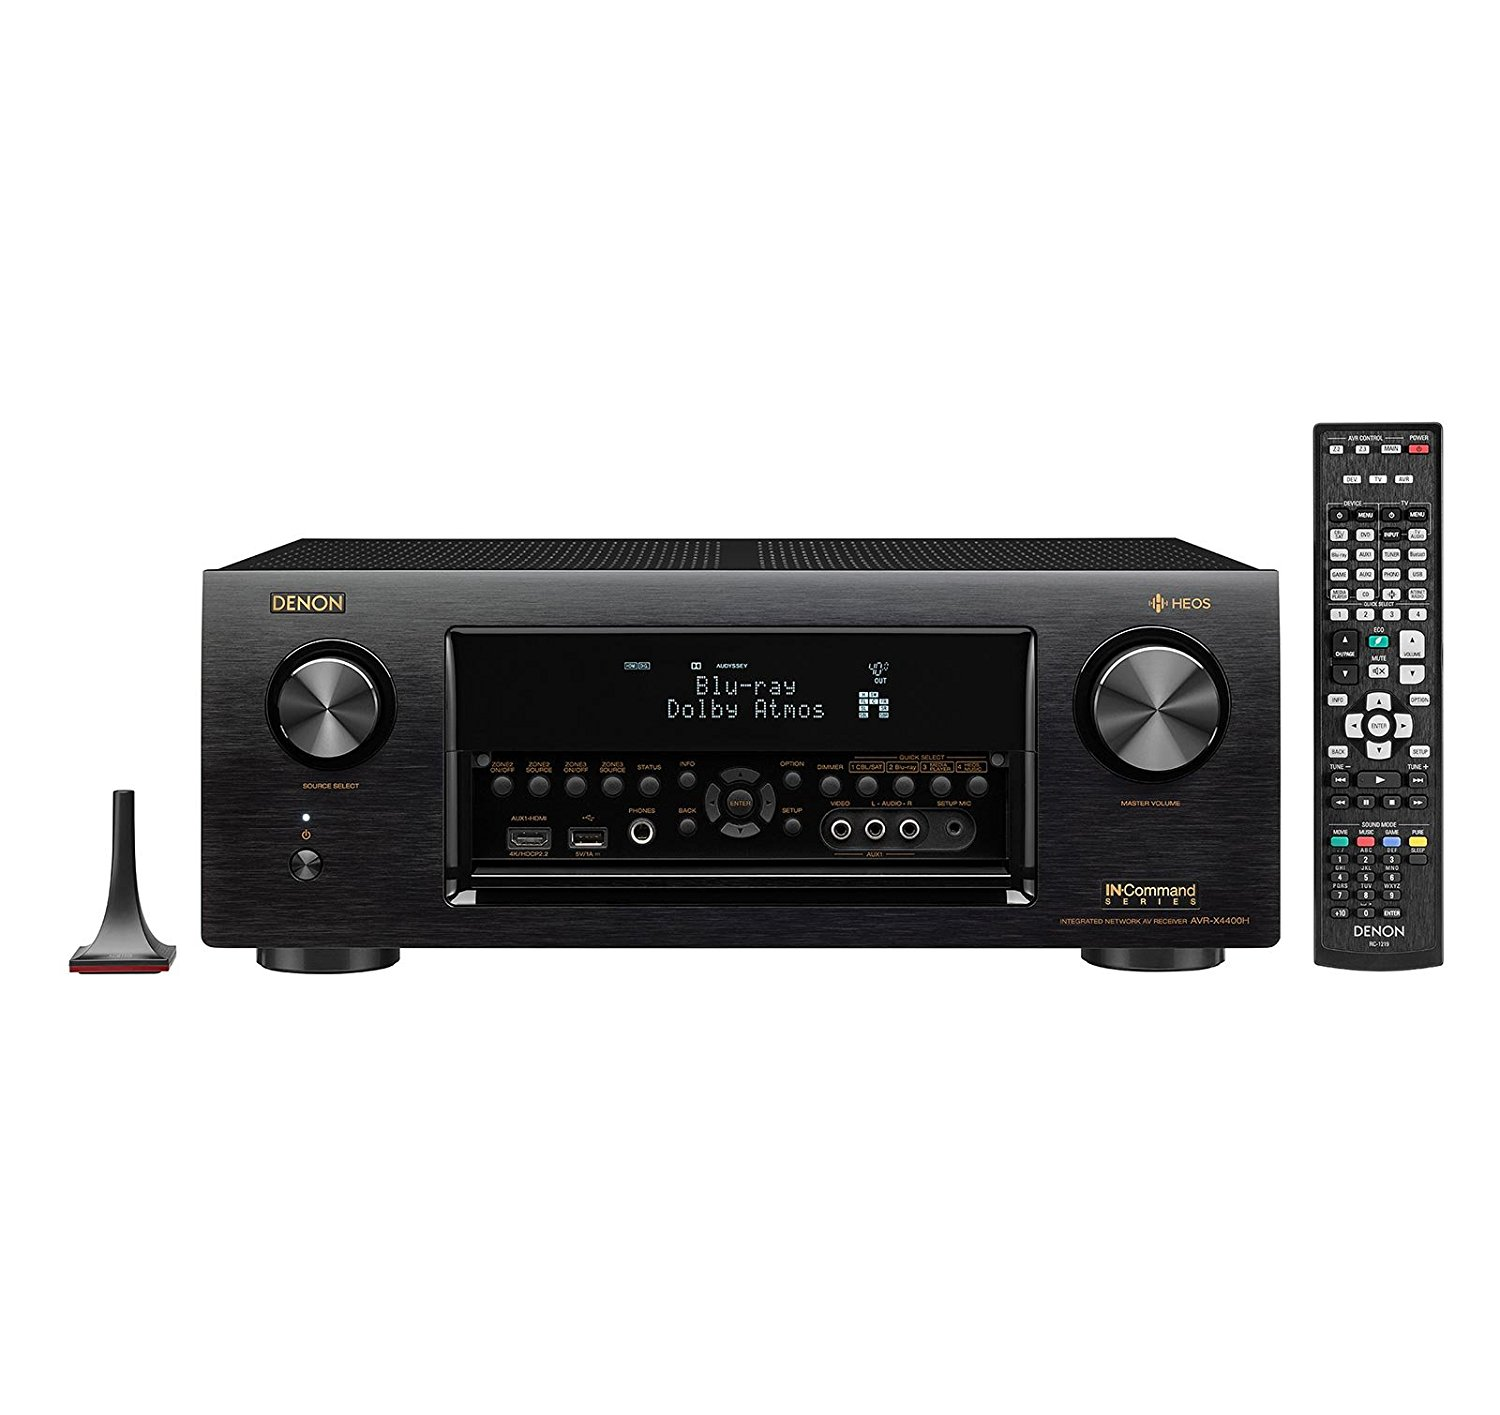 Denon AVR-X4400H 9.2 Channel Ultra HD AV Receiver with Dolby Atmos OPEN BOX LIKE New by Denon